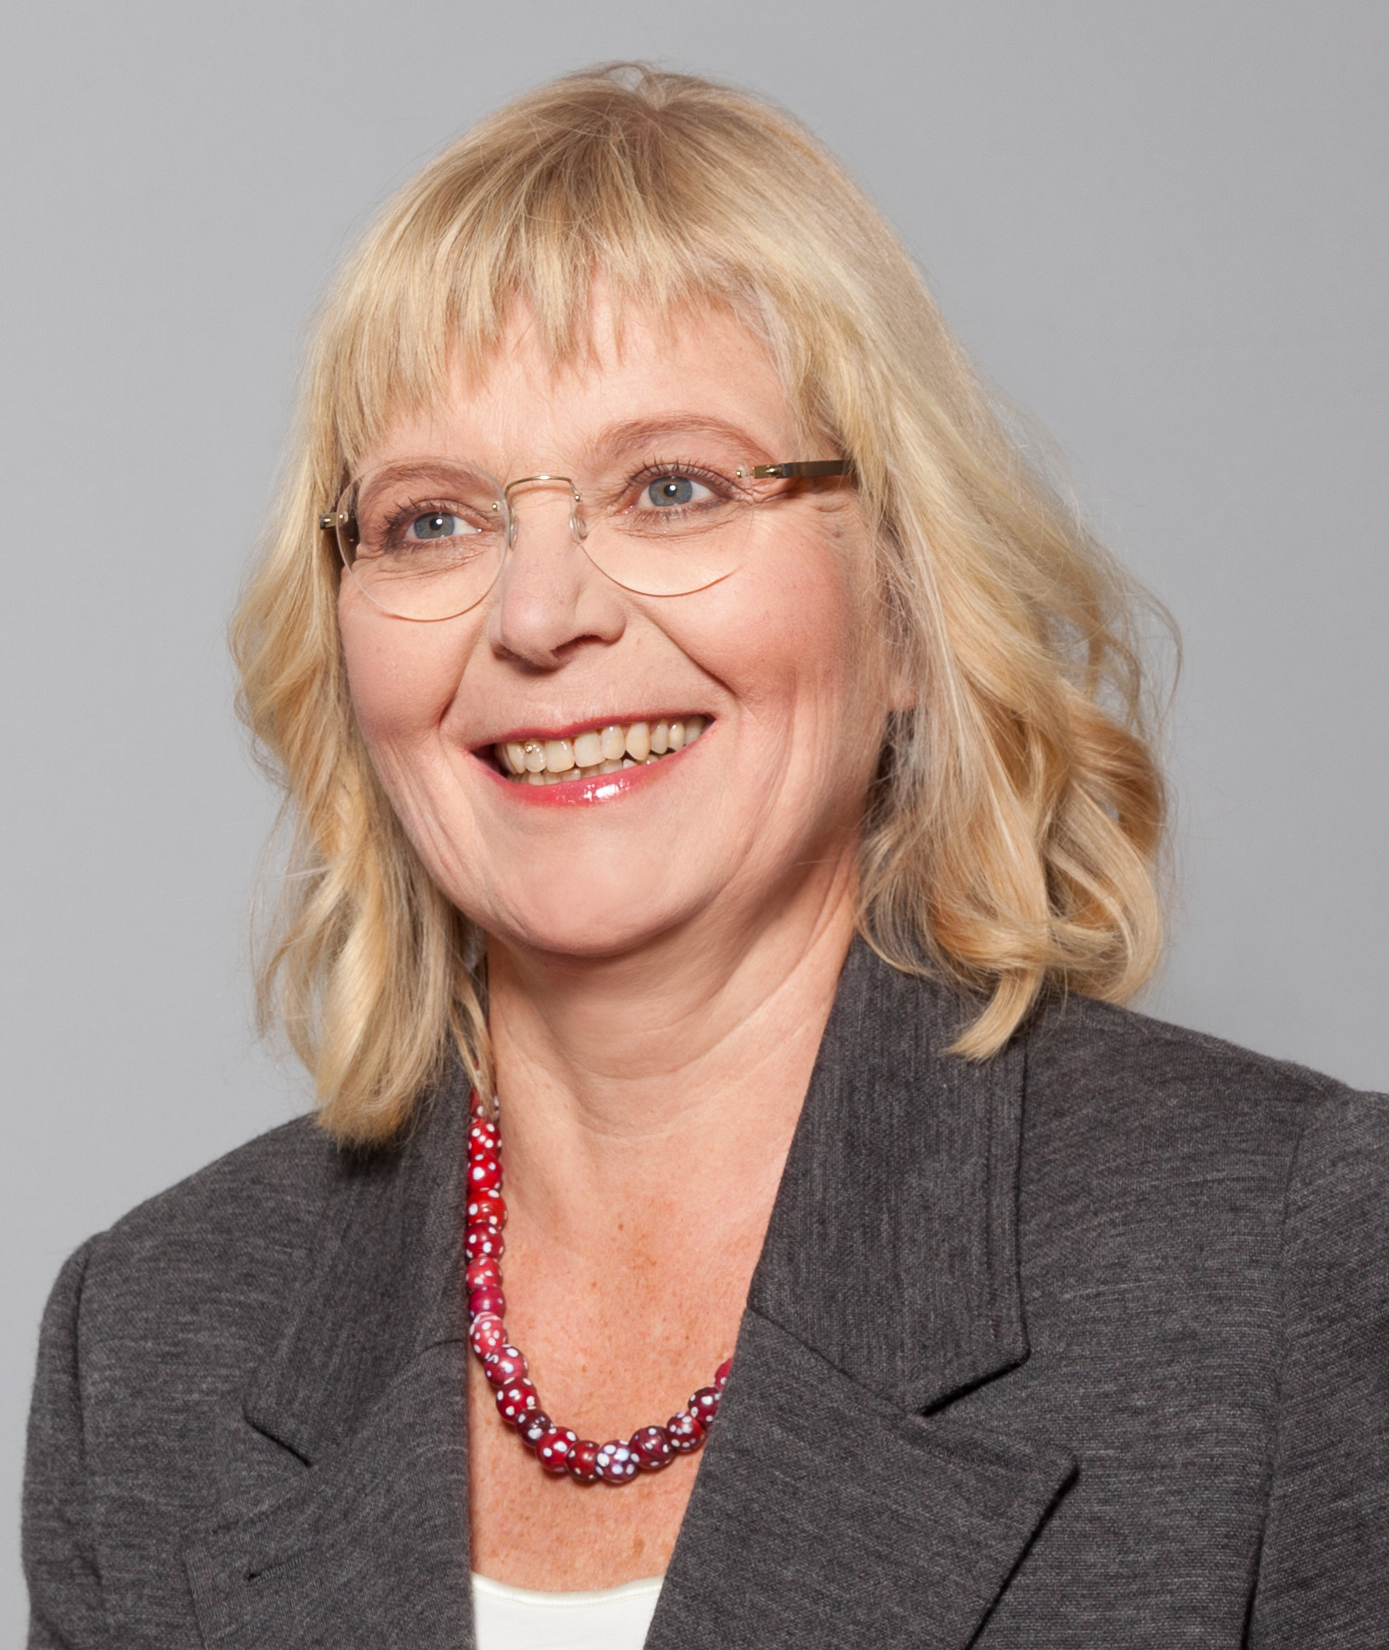 Bettina Lobenberg